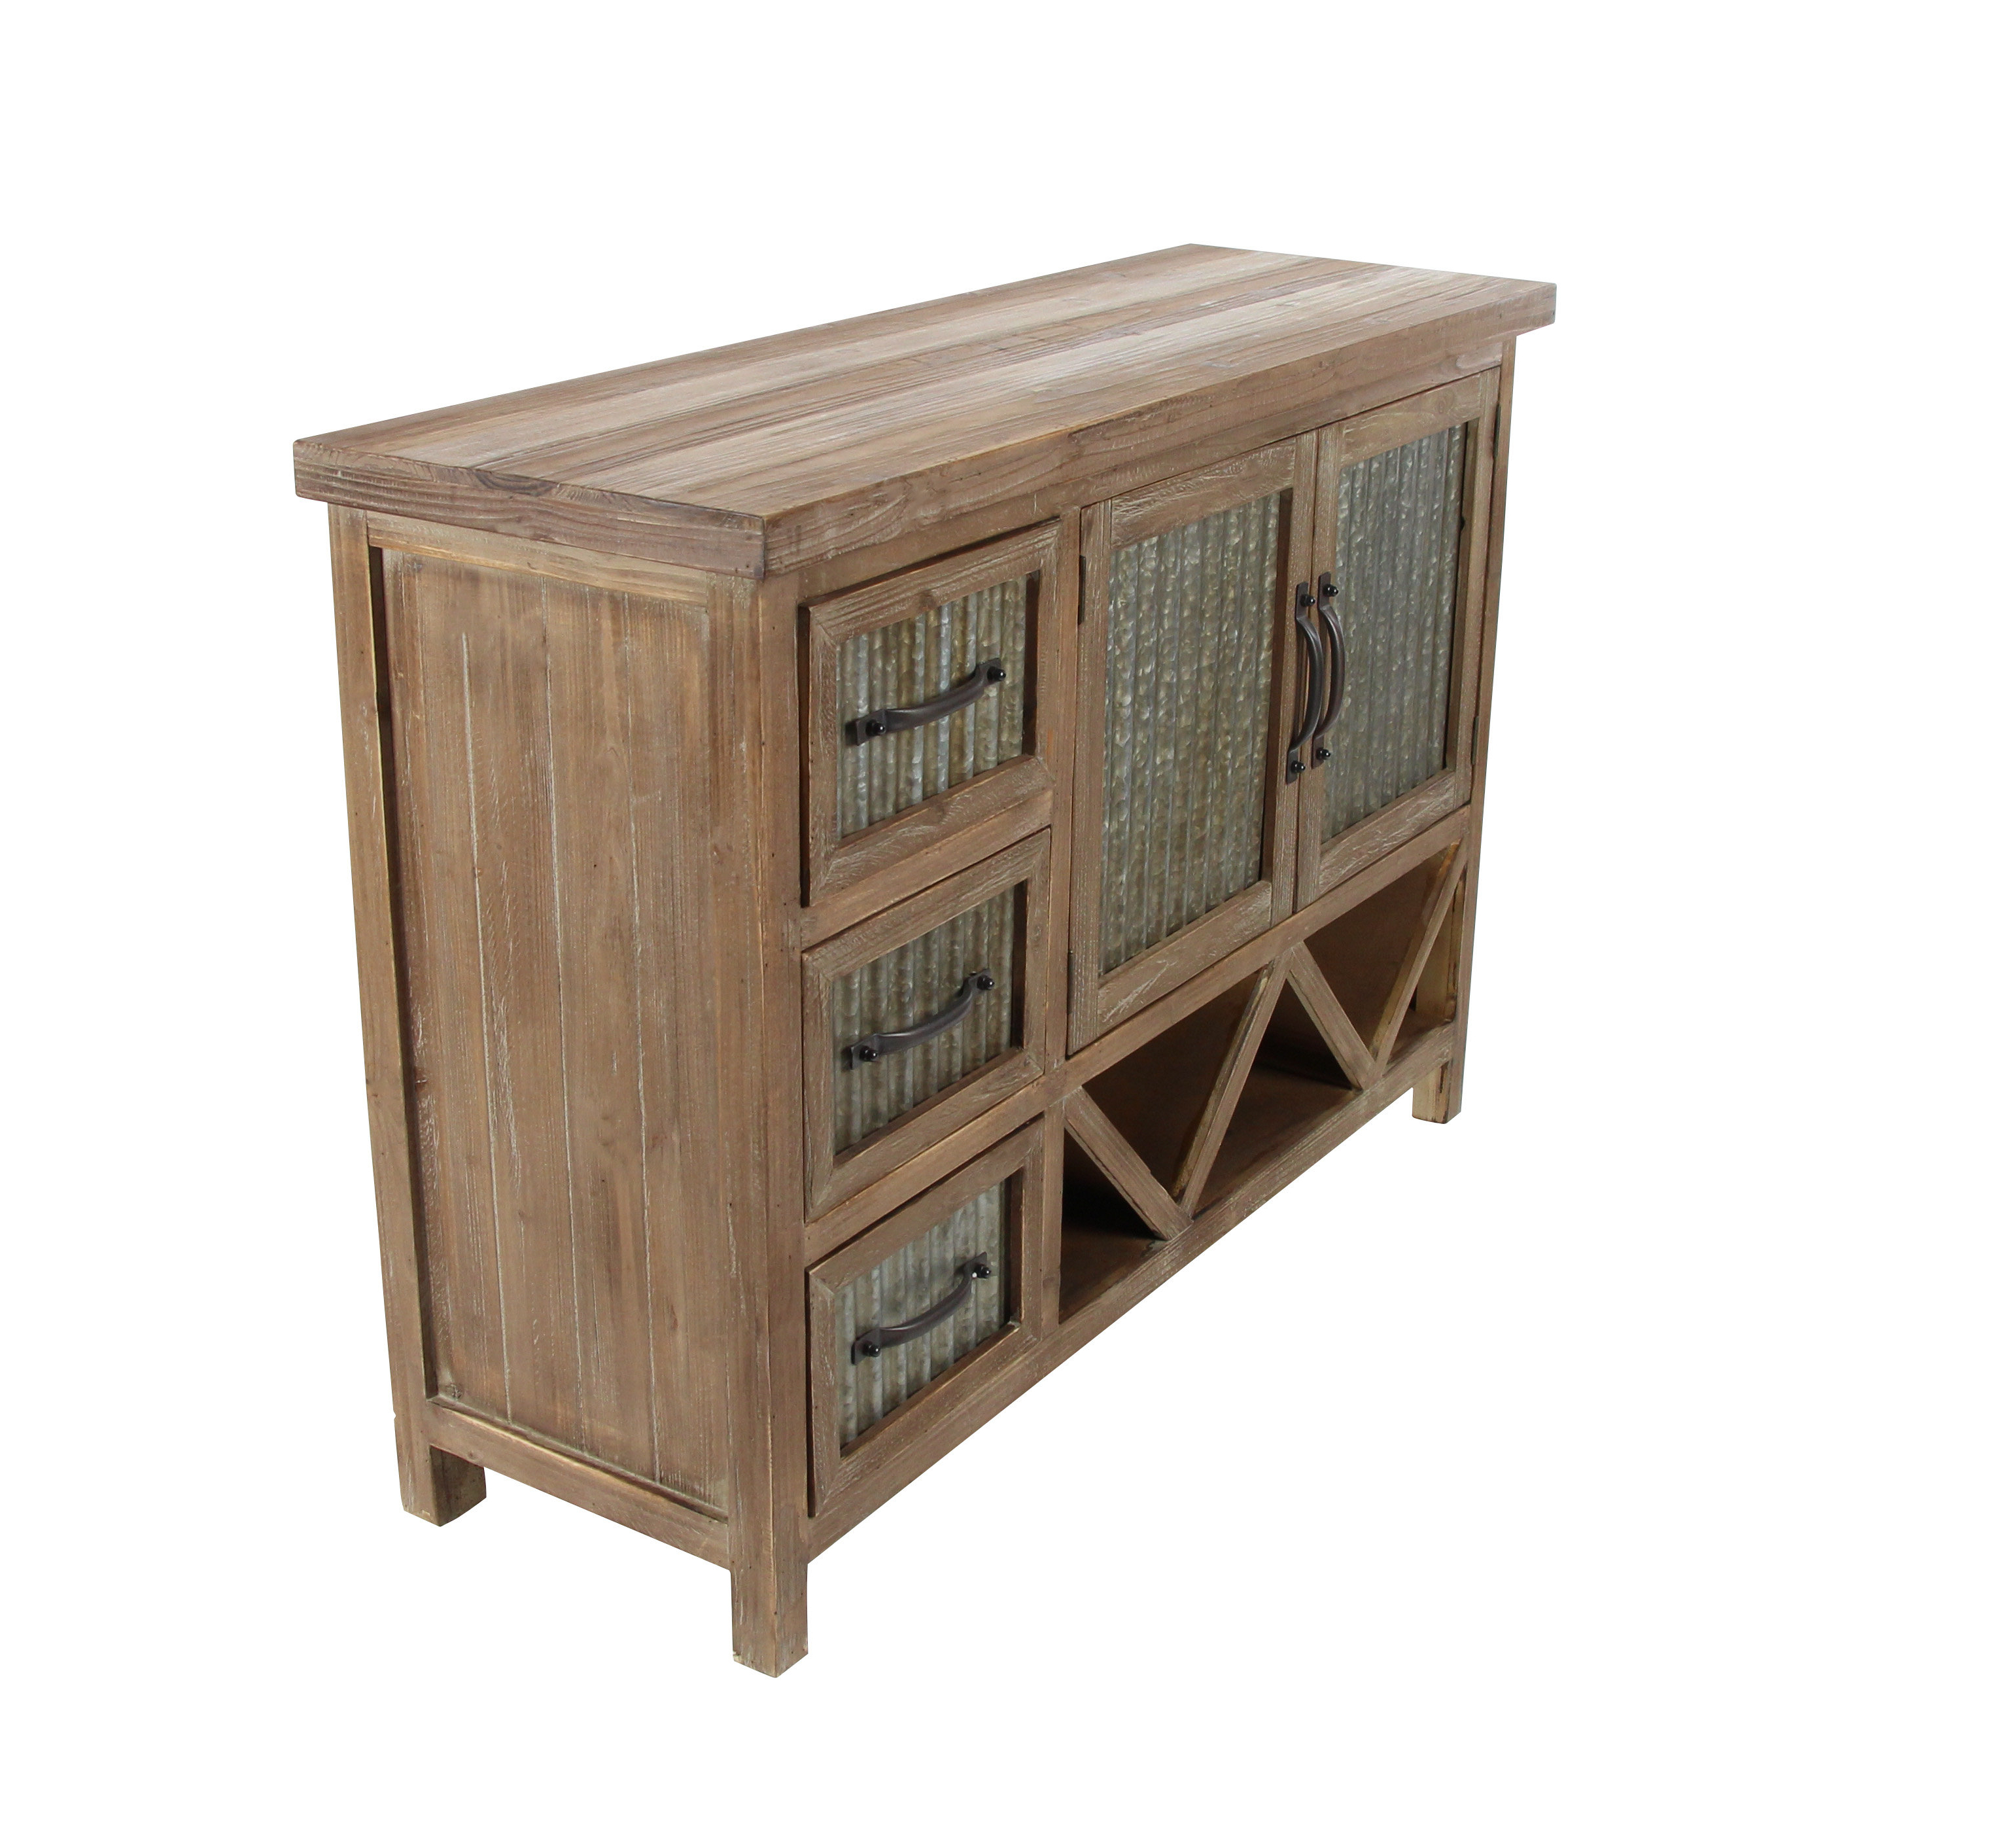 Wayfair Intended For Best And Newest Corrugated Natural 4 Drawer Sideboards (View 2 of 20)